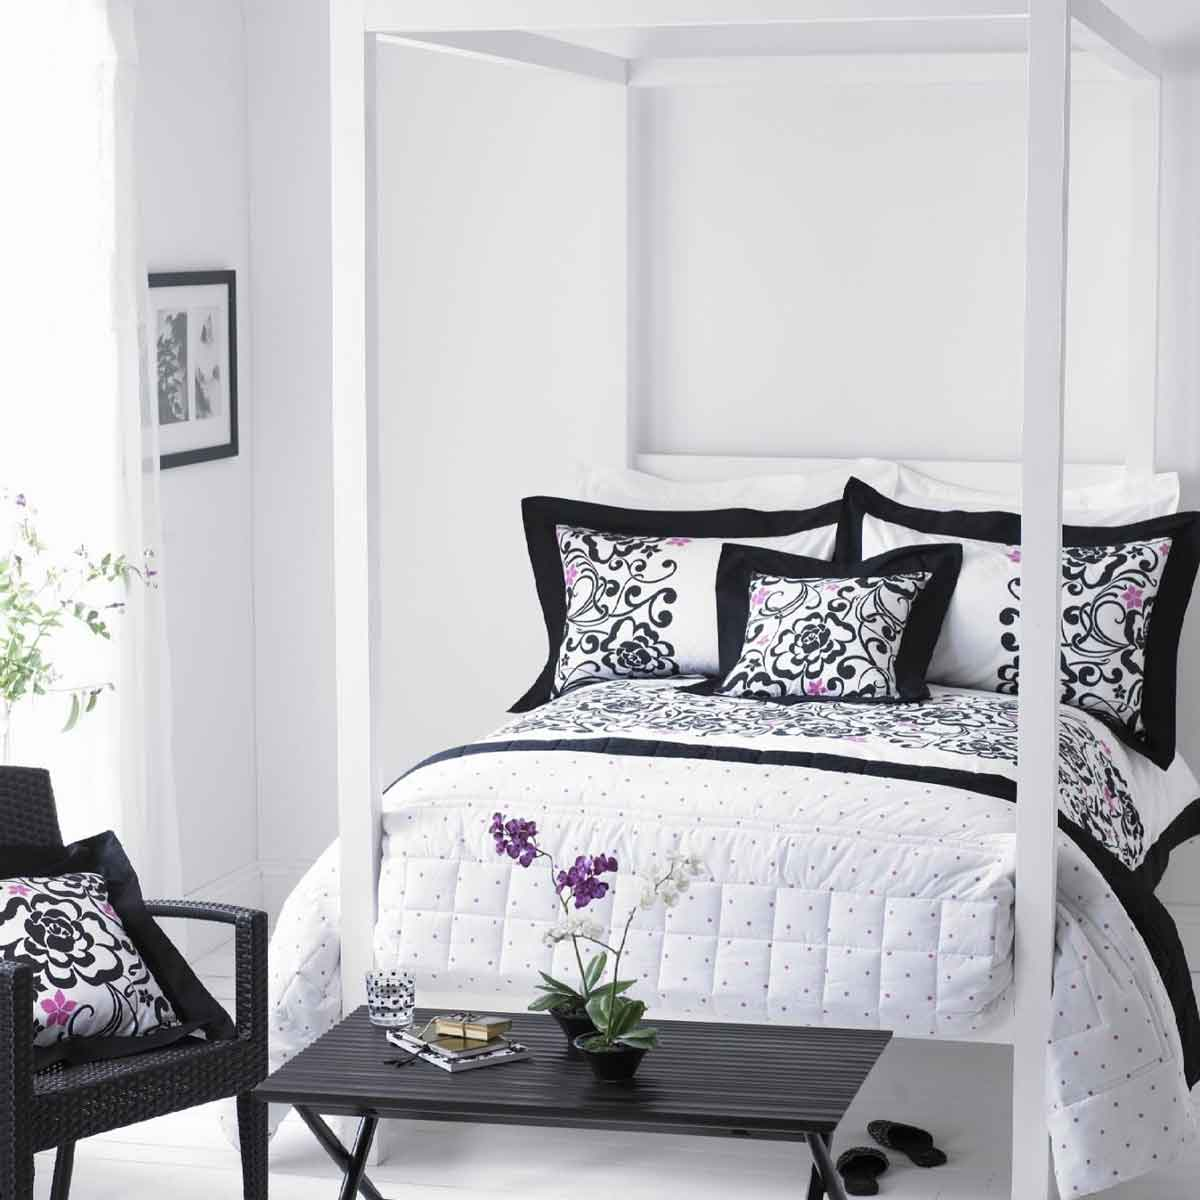 Black and white bedroom decorating ideas dream house experience White home design ideas